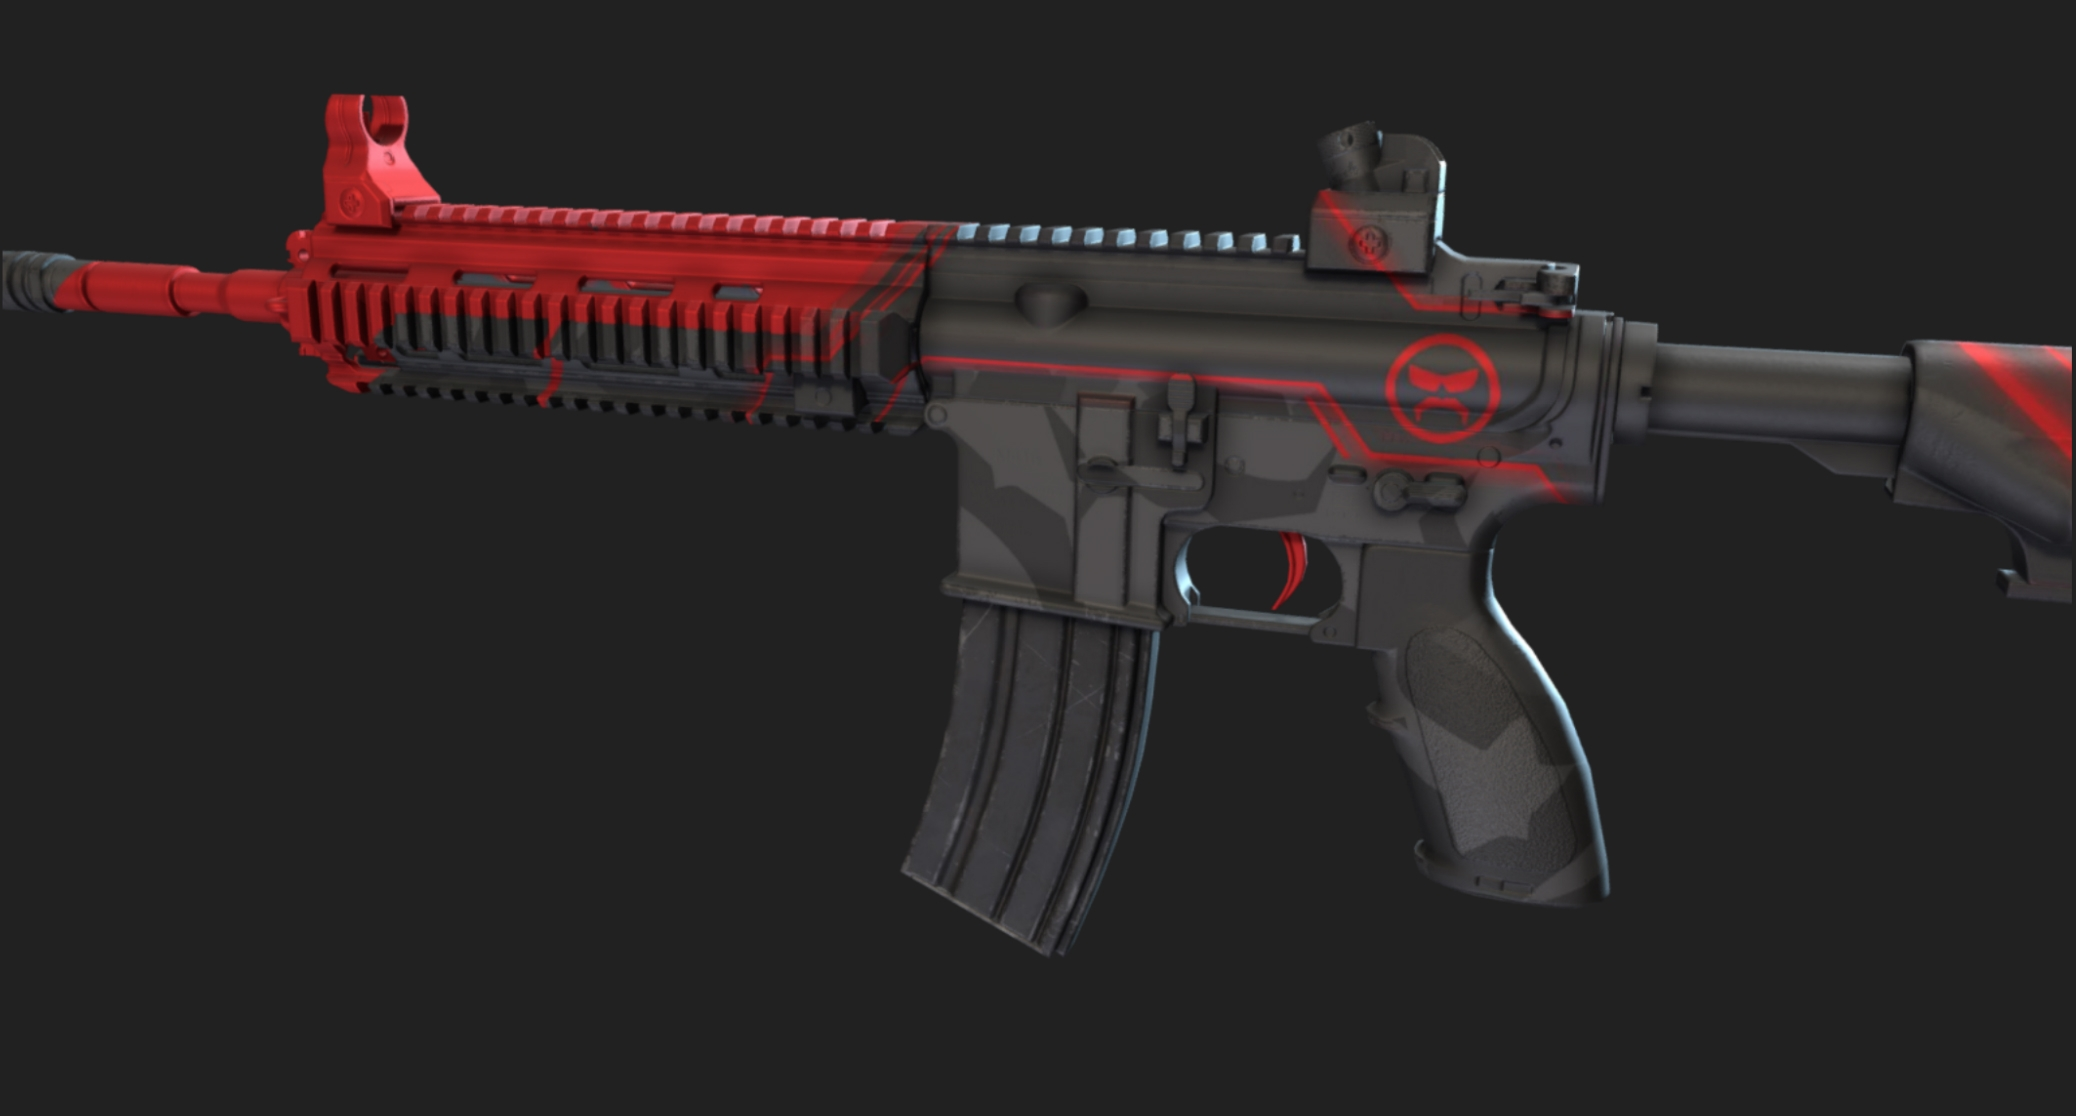 Dr  DisRespect and Shroud PUBG Weapon Skins Leaked